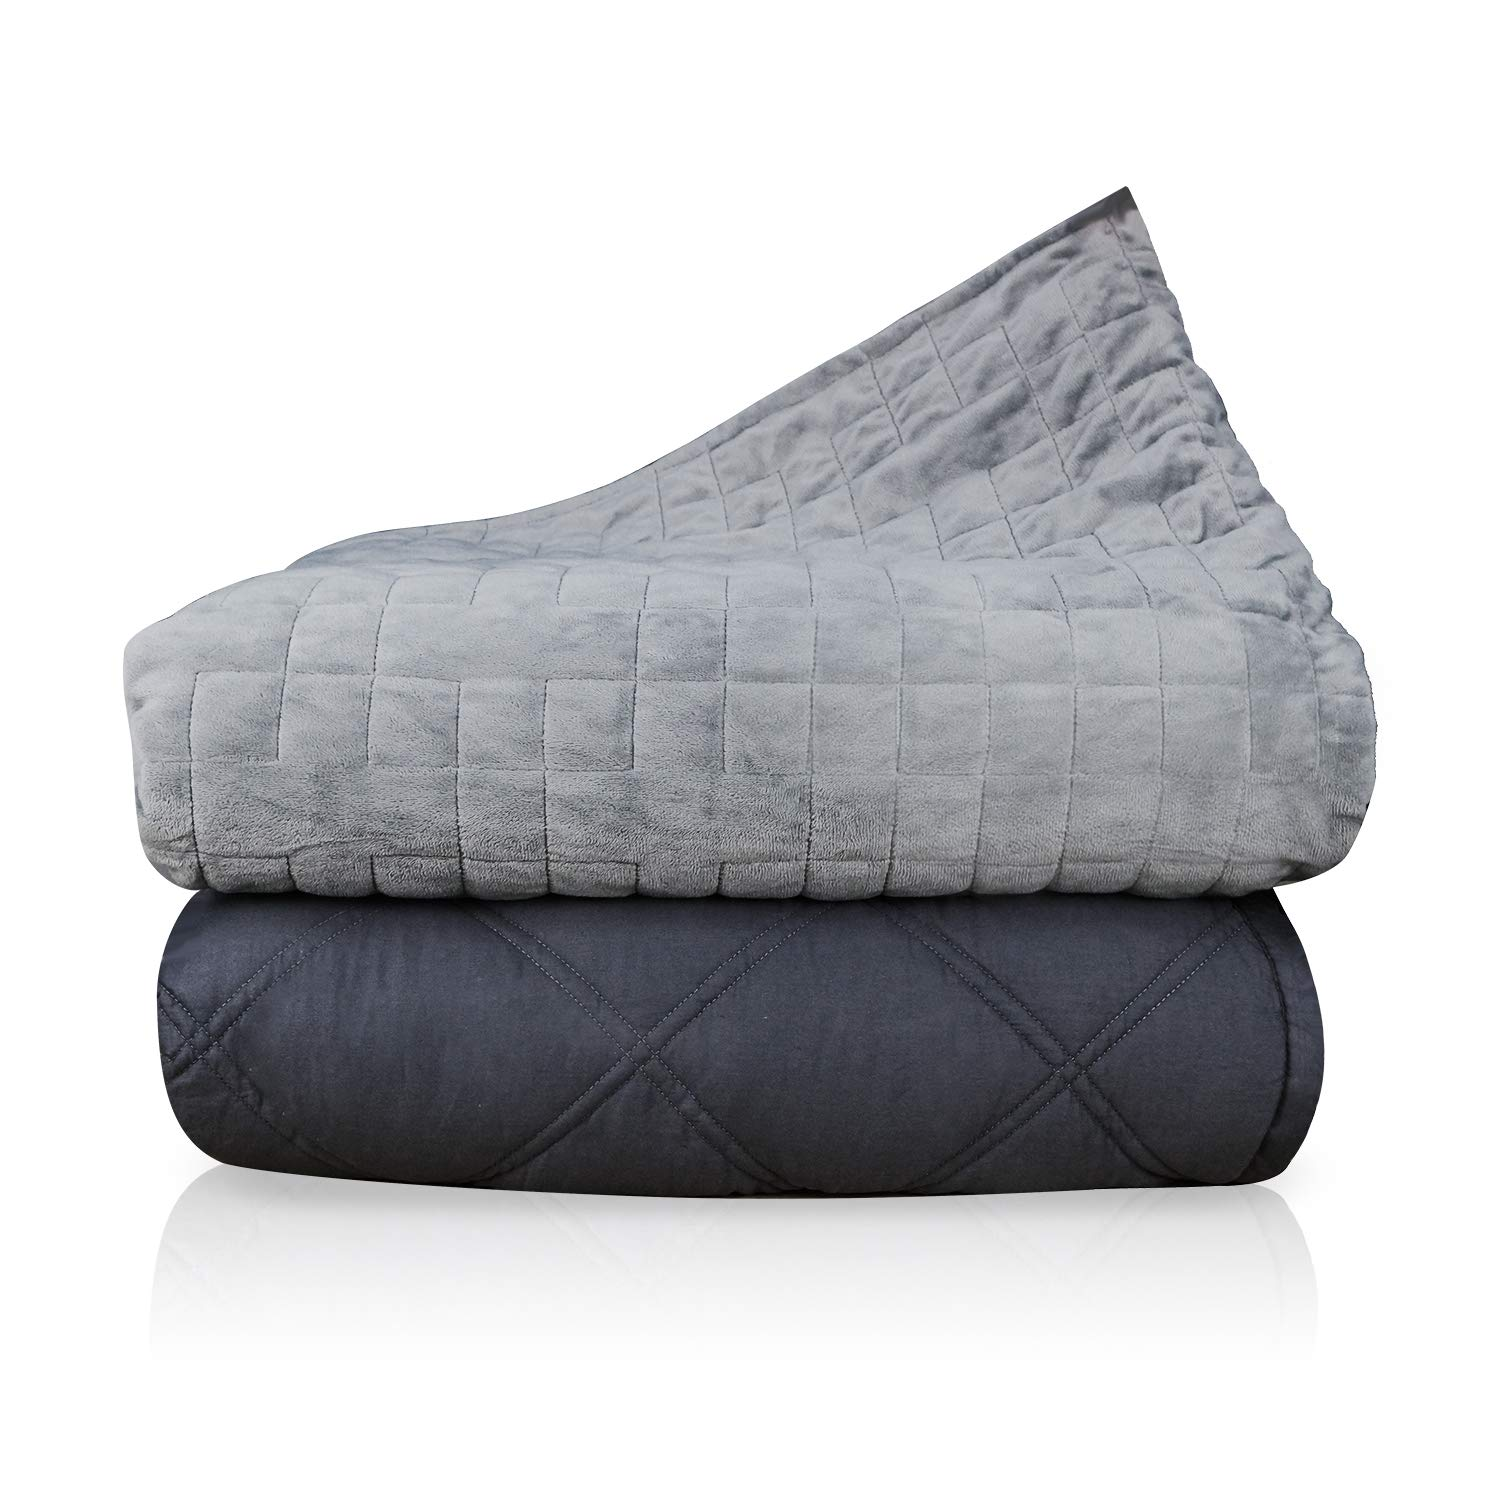 """80/""""x60/"""" Cozy Removable Blanket Cover -Queen Size Dual-Sided Dual-Purpose Throw Blanket Duvet Cover for Weighted Blanket Abida Blanket -Grey"""